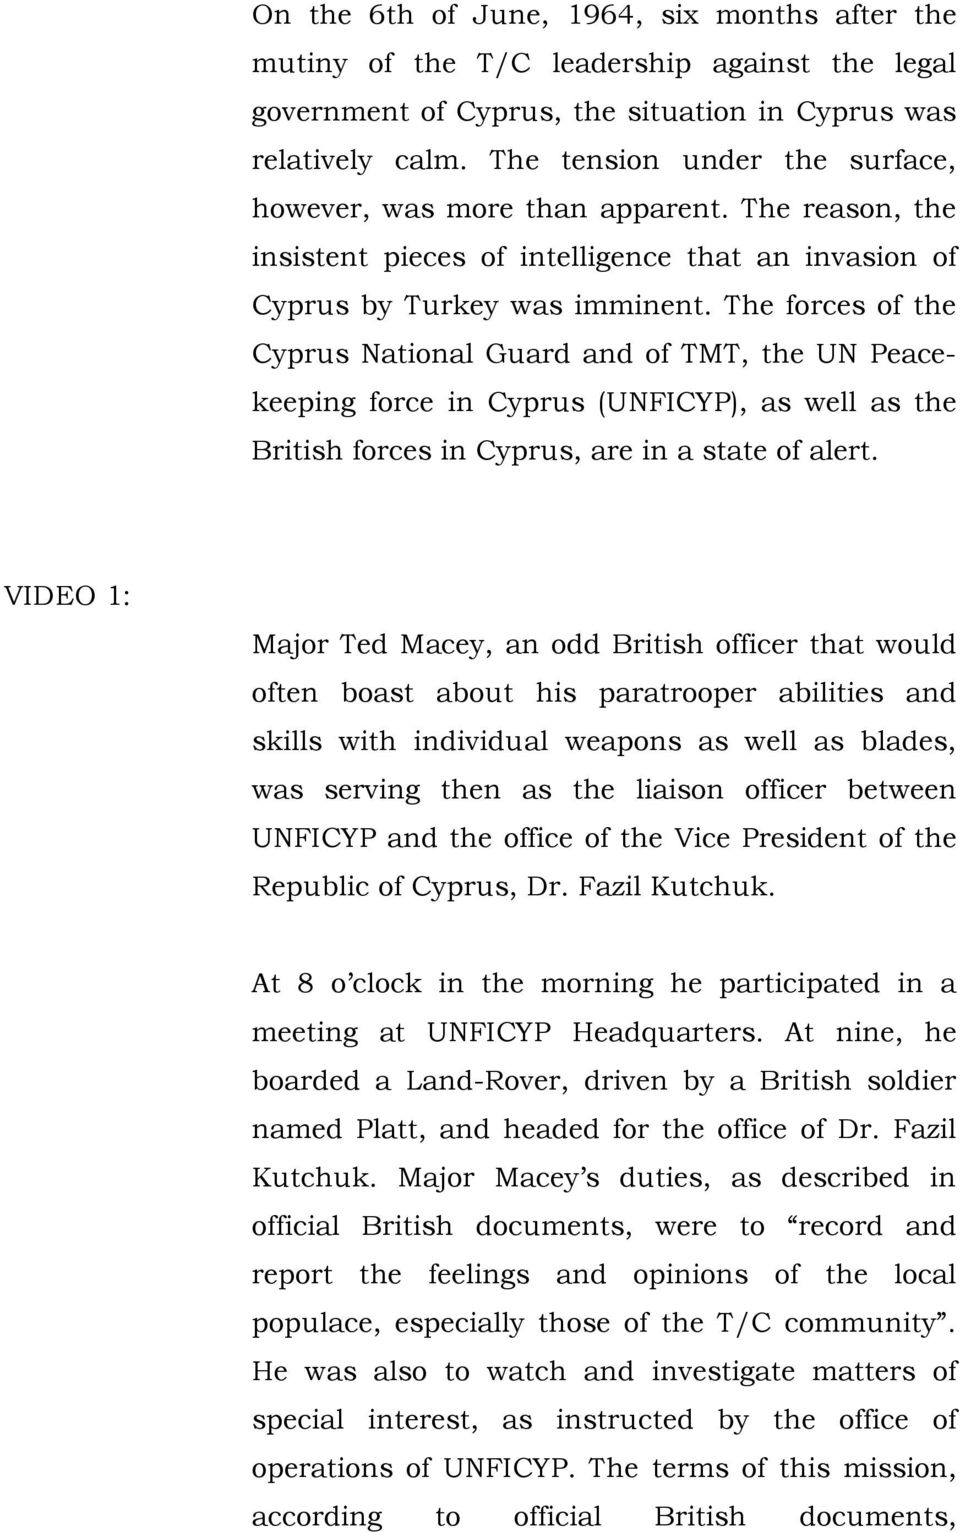 The forces of the Cyprus National Guard and of TMT, the UN Peacekeeping force in Cyprus (UNFICYP), as well as the British forces in Cyprus, are in a state of alert.